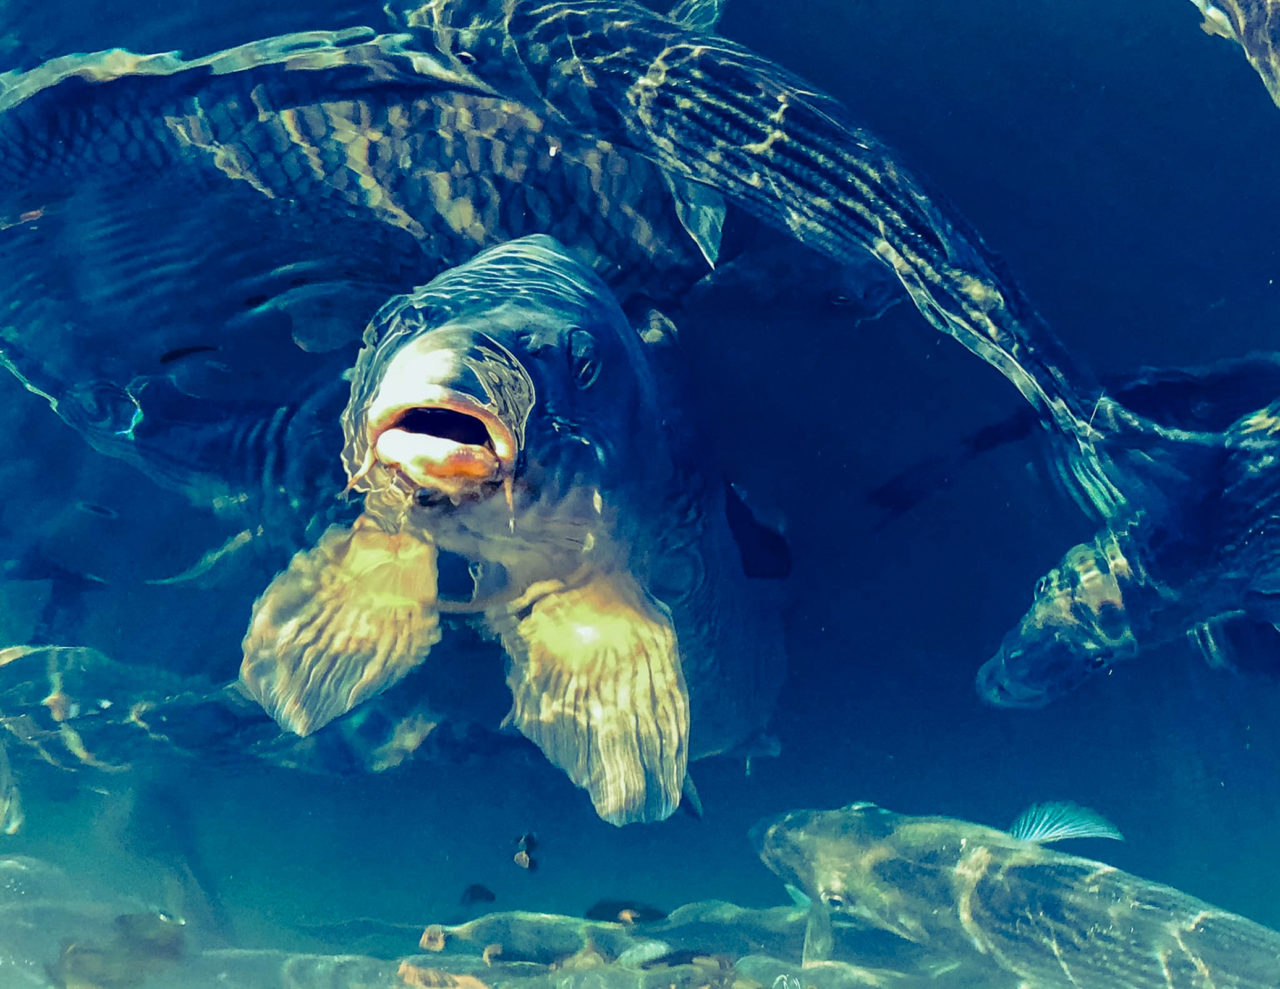 Please Keep My Home Safe  as Fish are Shouting: Clean Water - Rena Hottinger